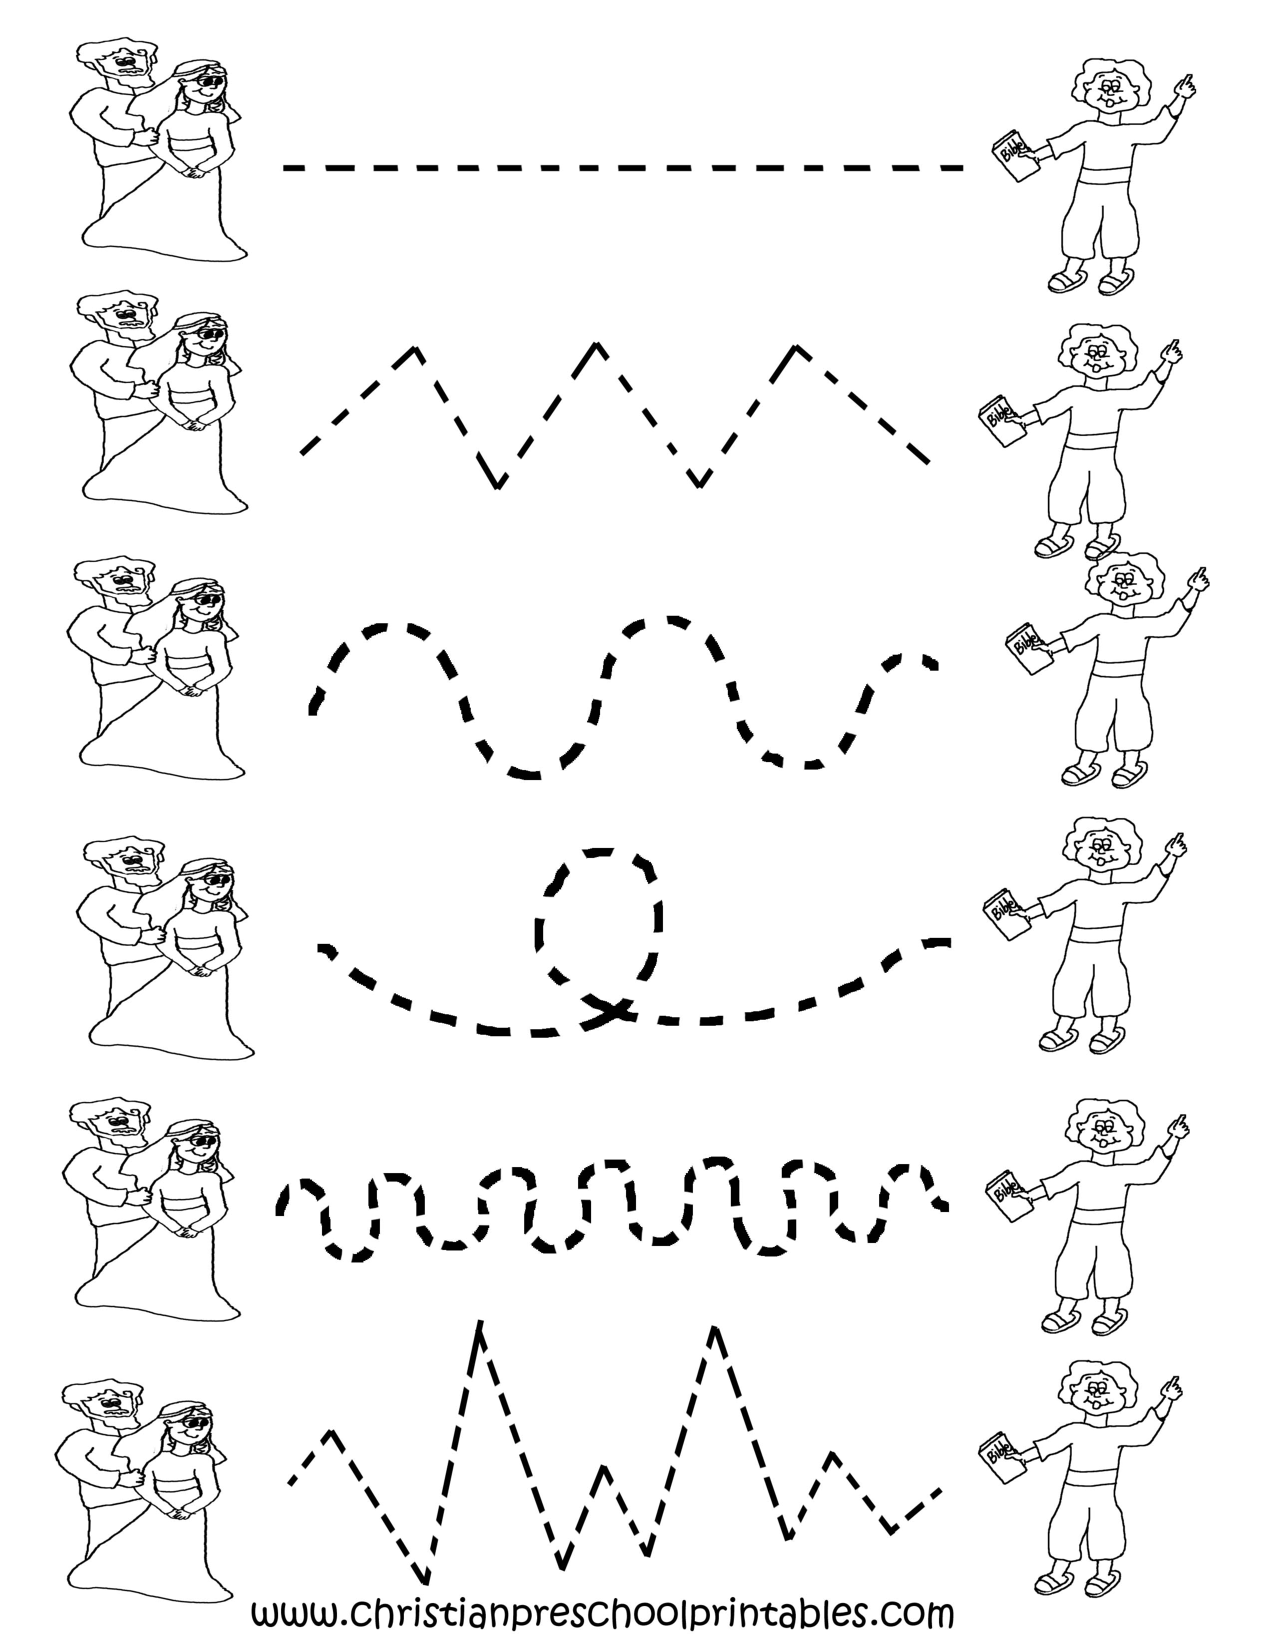 preschool tracing worksheets cakepinscom - Free Printable Worksheets For Children